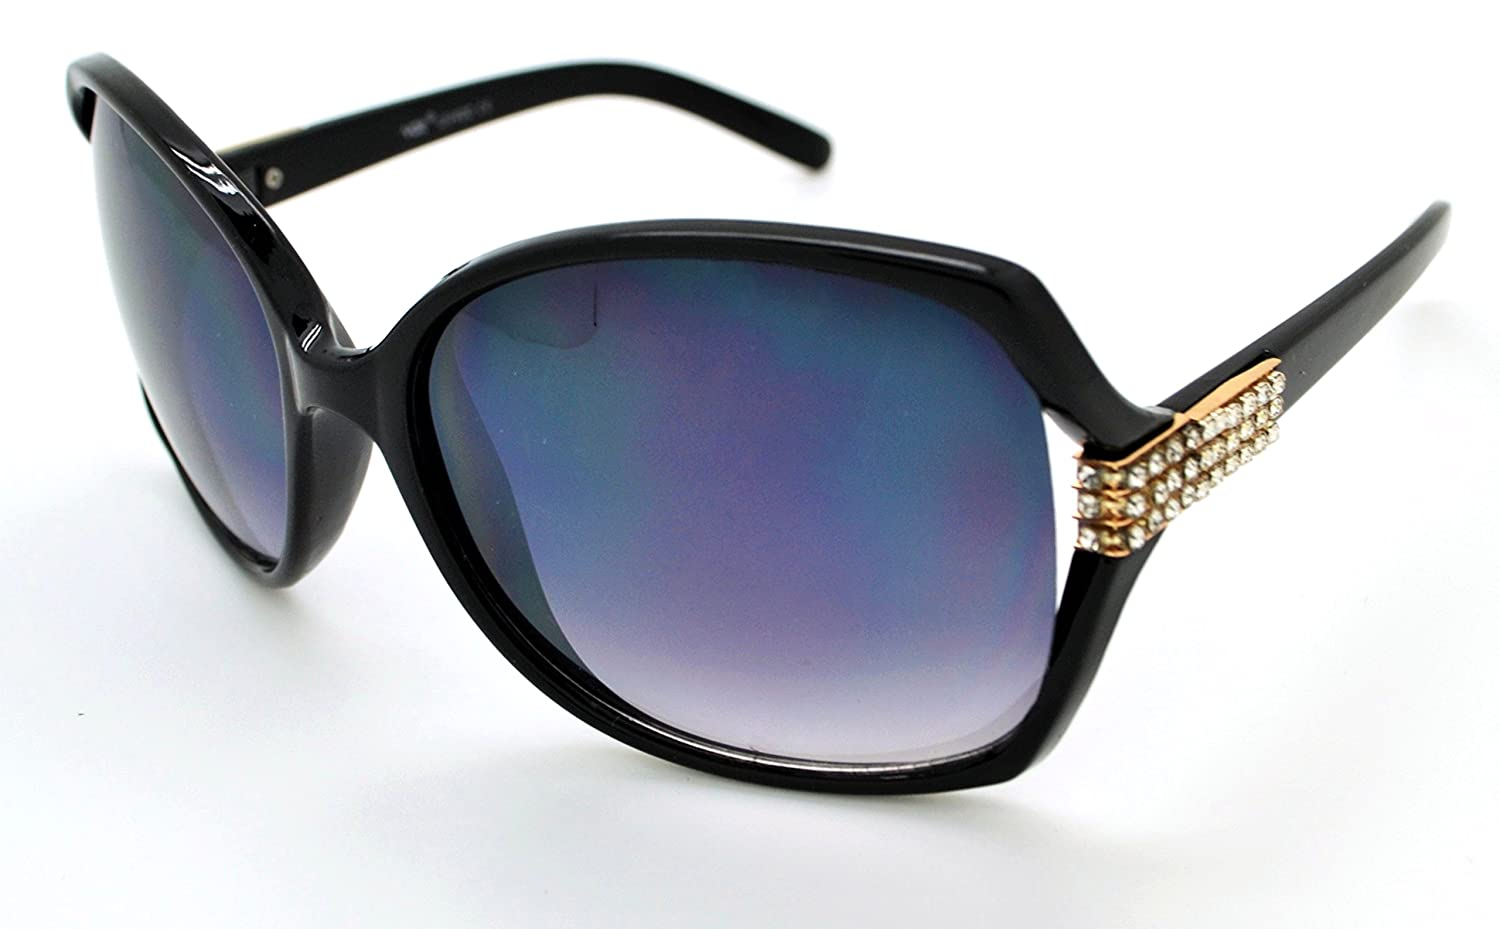 4d9bf4348a4 VOX Trendy Classic High Quality Womens Hot Fashion Sunglasses w FREE  Microfiber Pouch - Black Gold Frame - Smoke Lens  Amazon.co.uk  Clothing